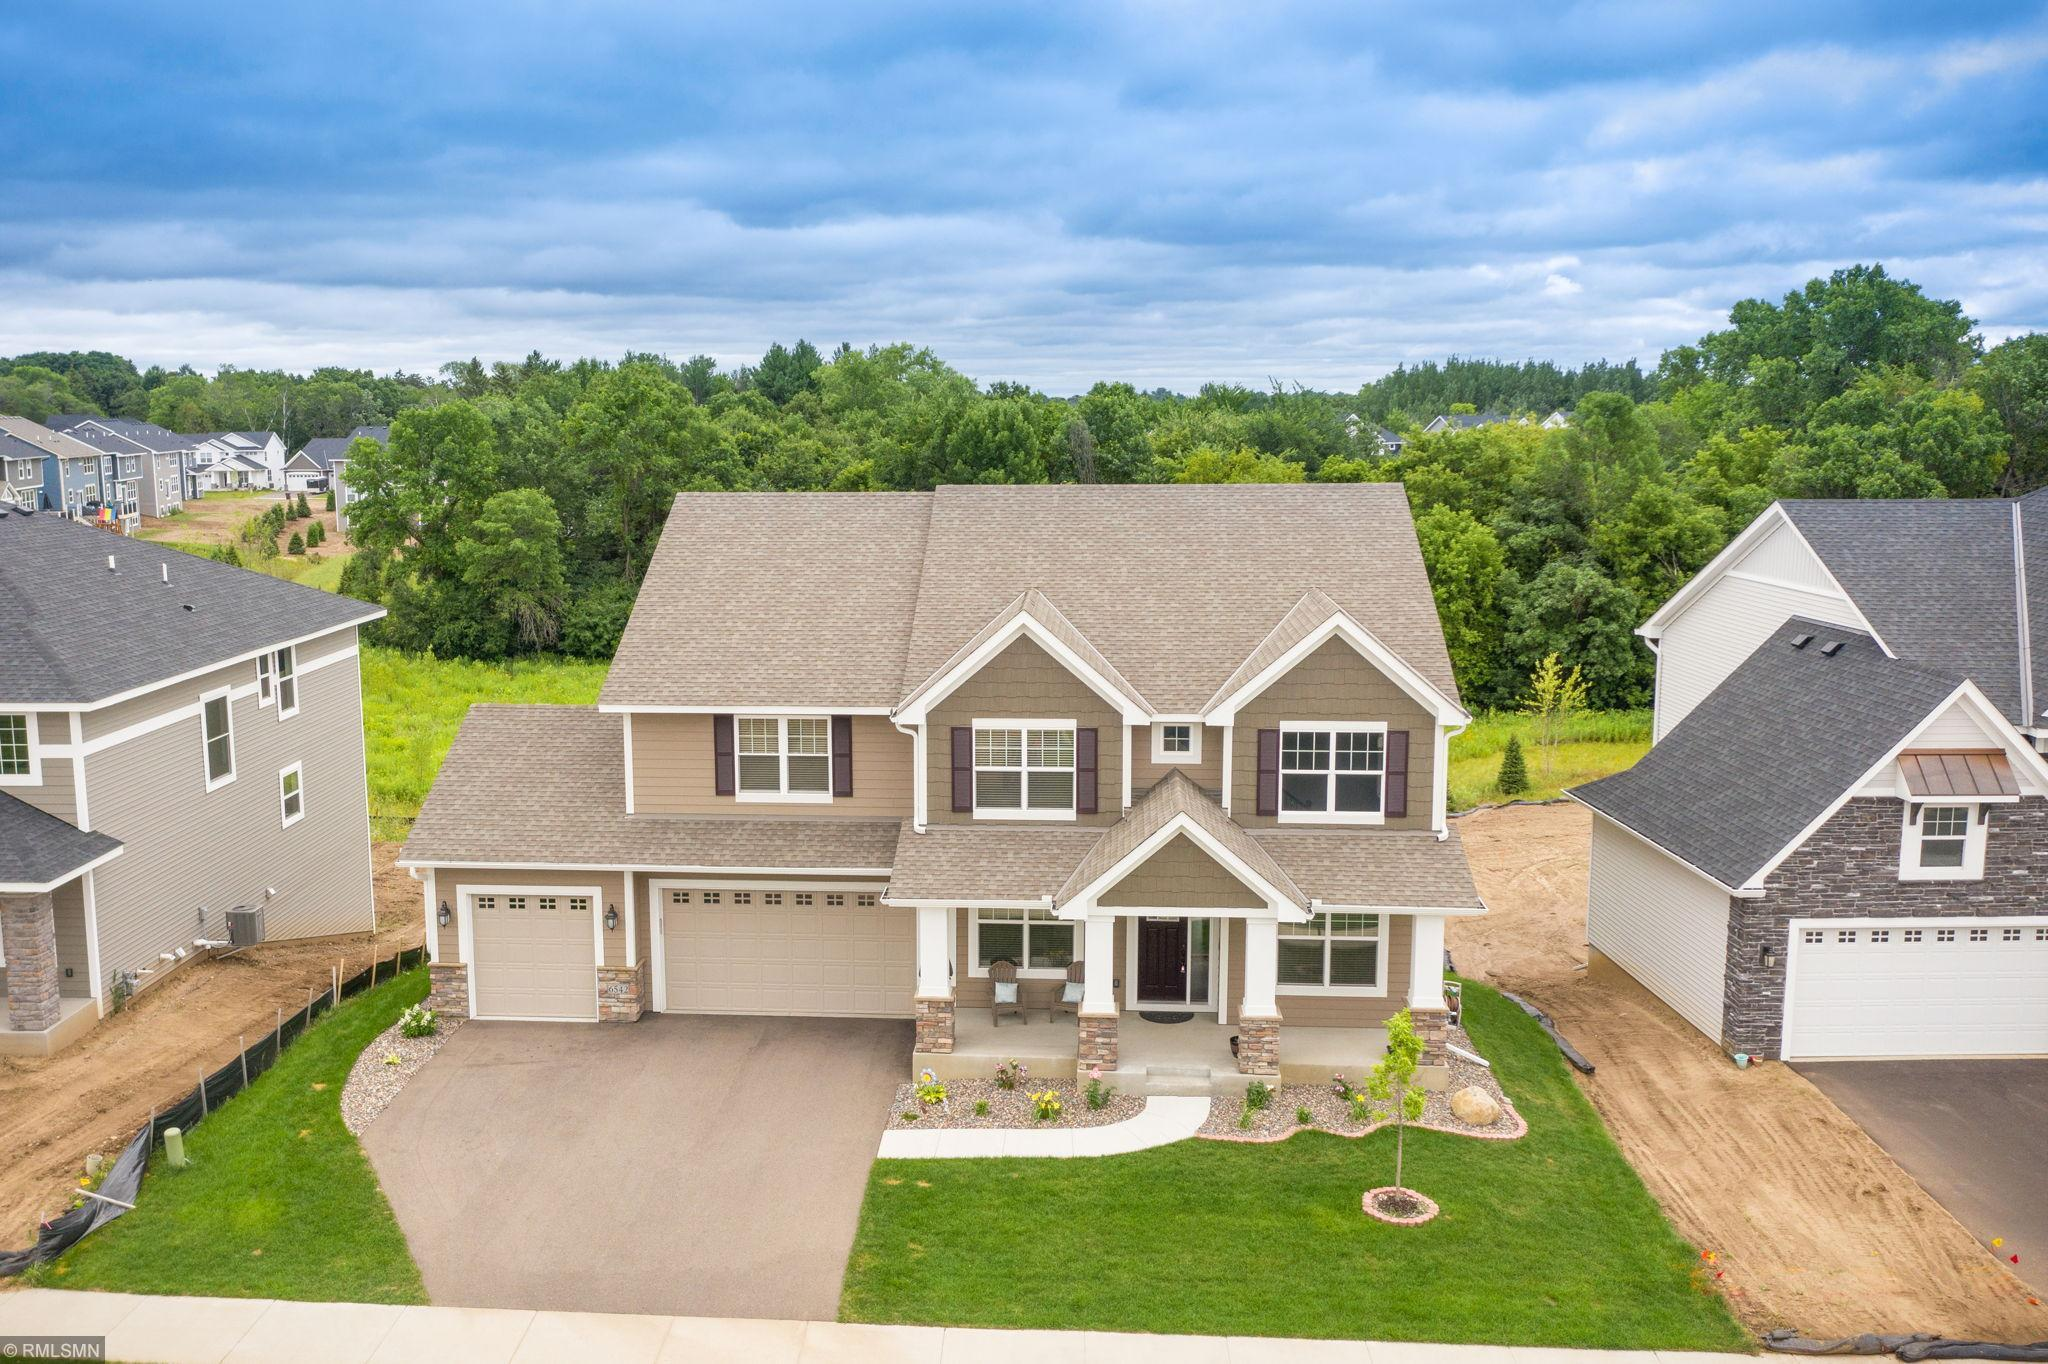 6542 Alverno Property Photo - Inver Grove Heights, MN real estate listing